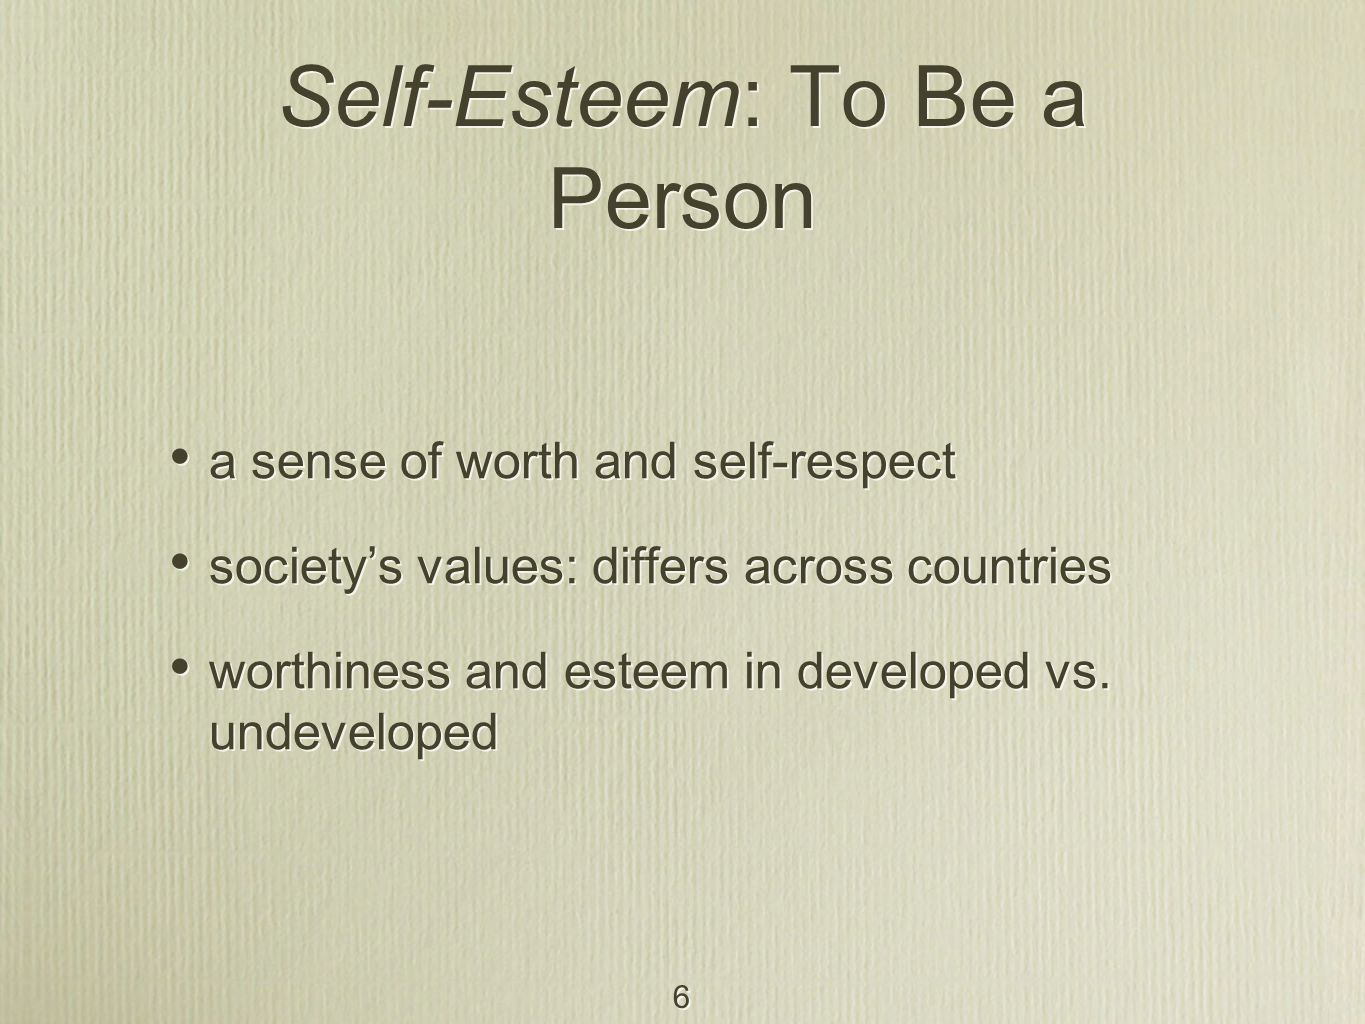 Self-Esteem: To Be a Person